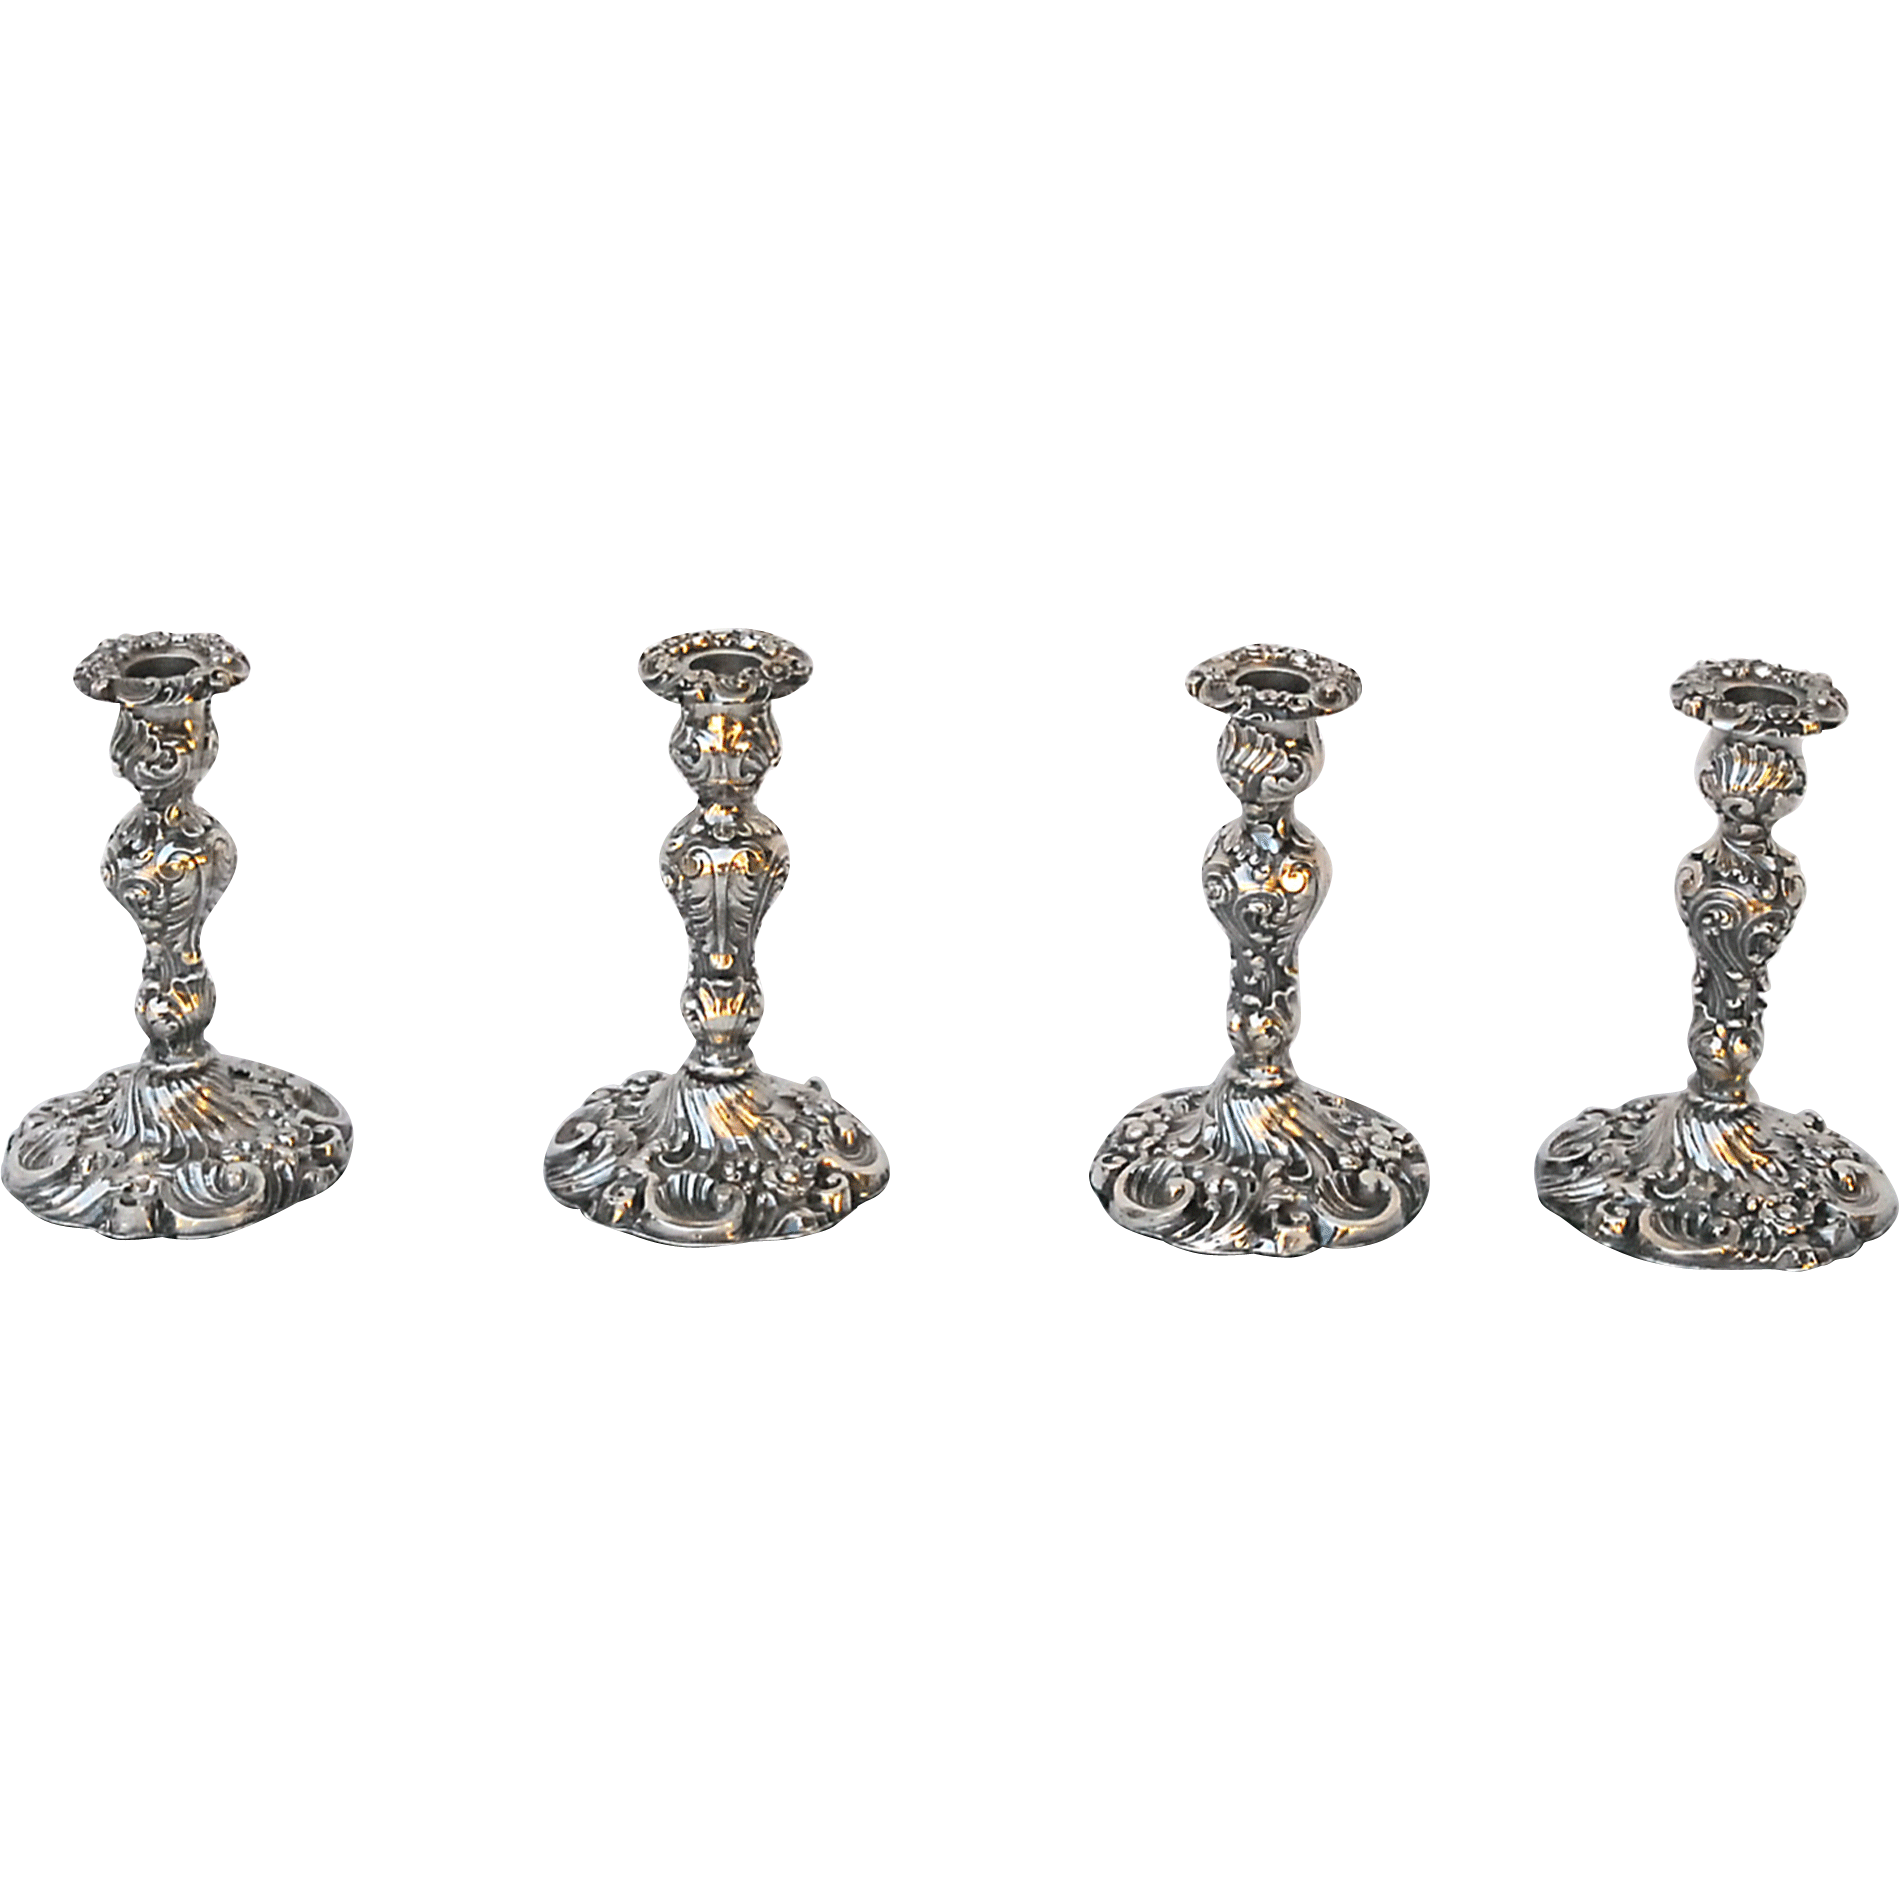 Set of Four George IV Sterling Candlesticks